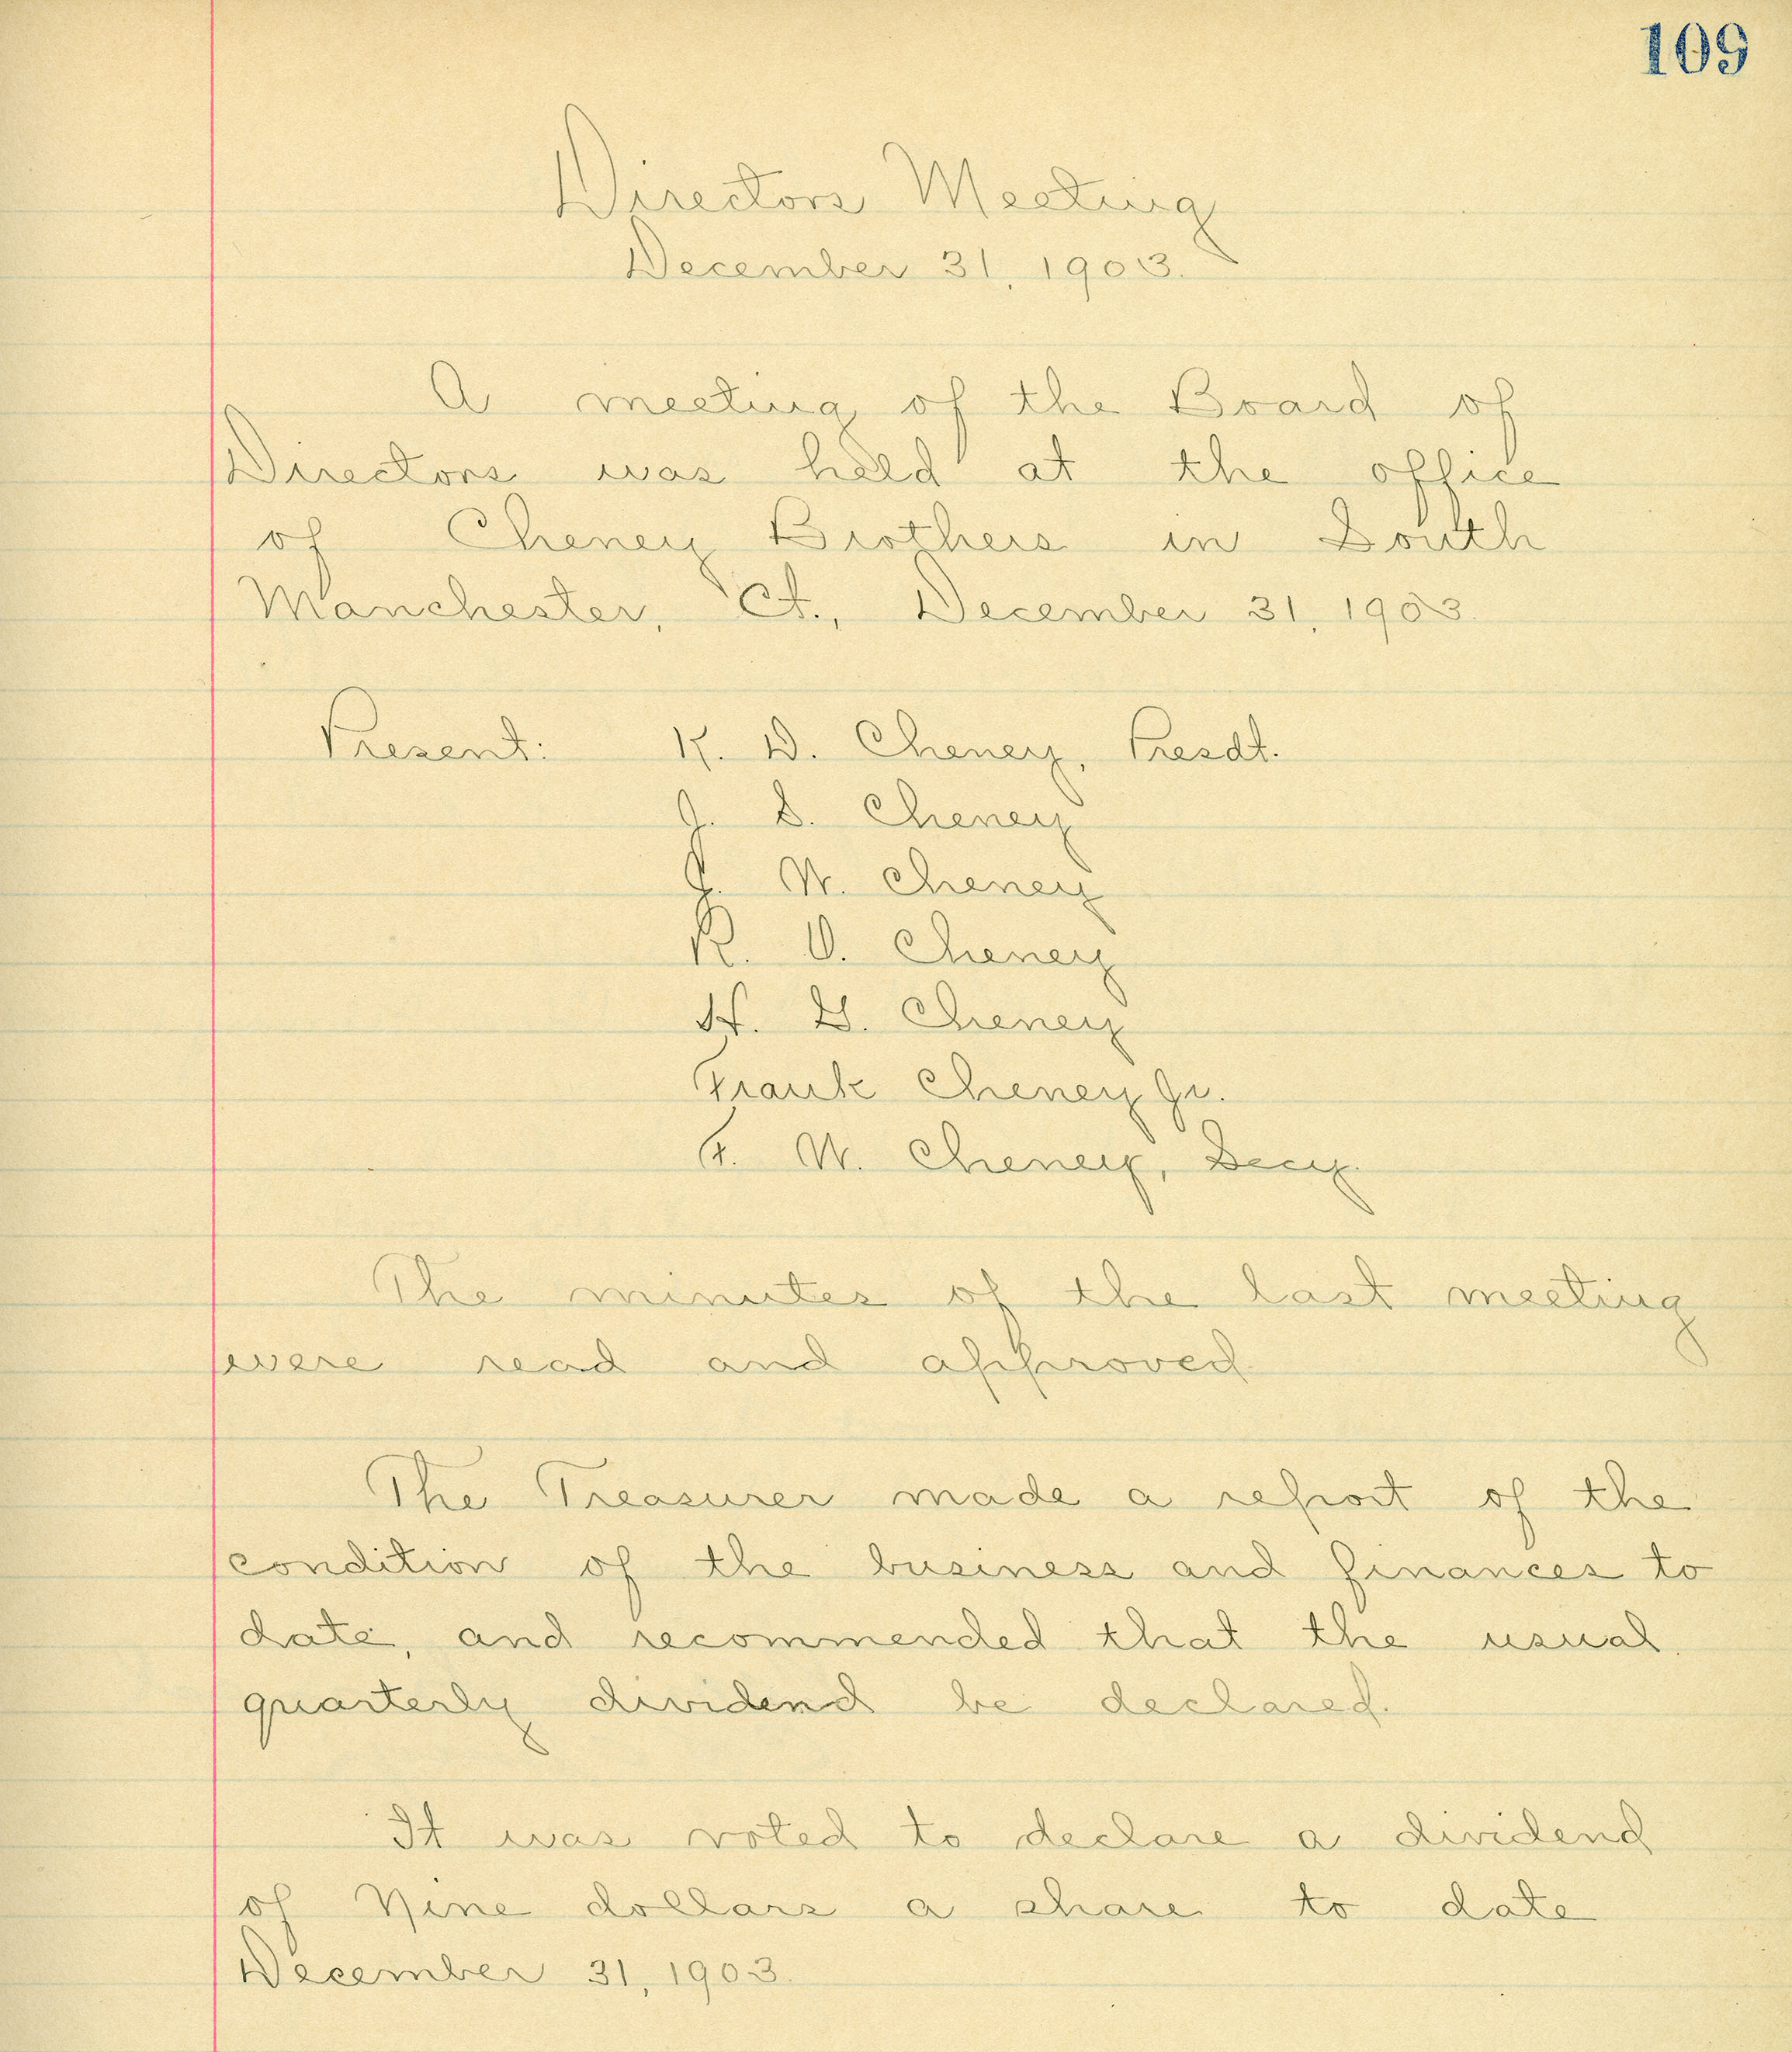 Page from the Cheney Brothers Silk Manufacturing Company Board of Director's minutes, December 31, 1903